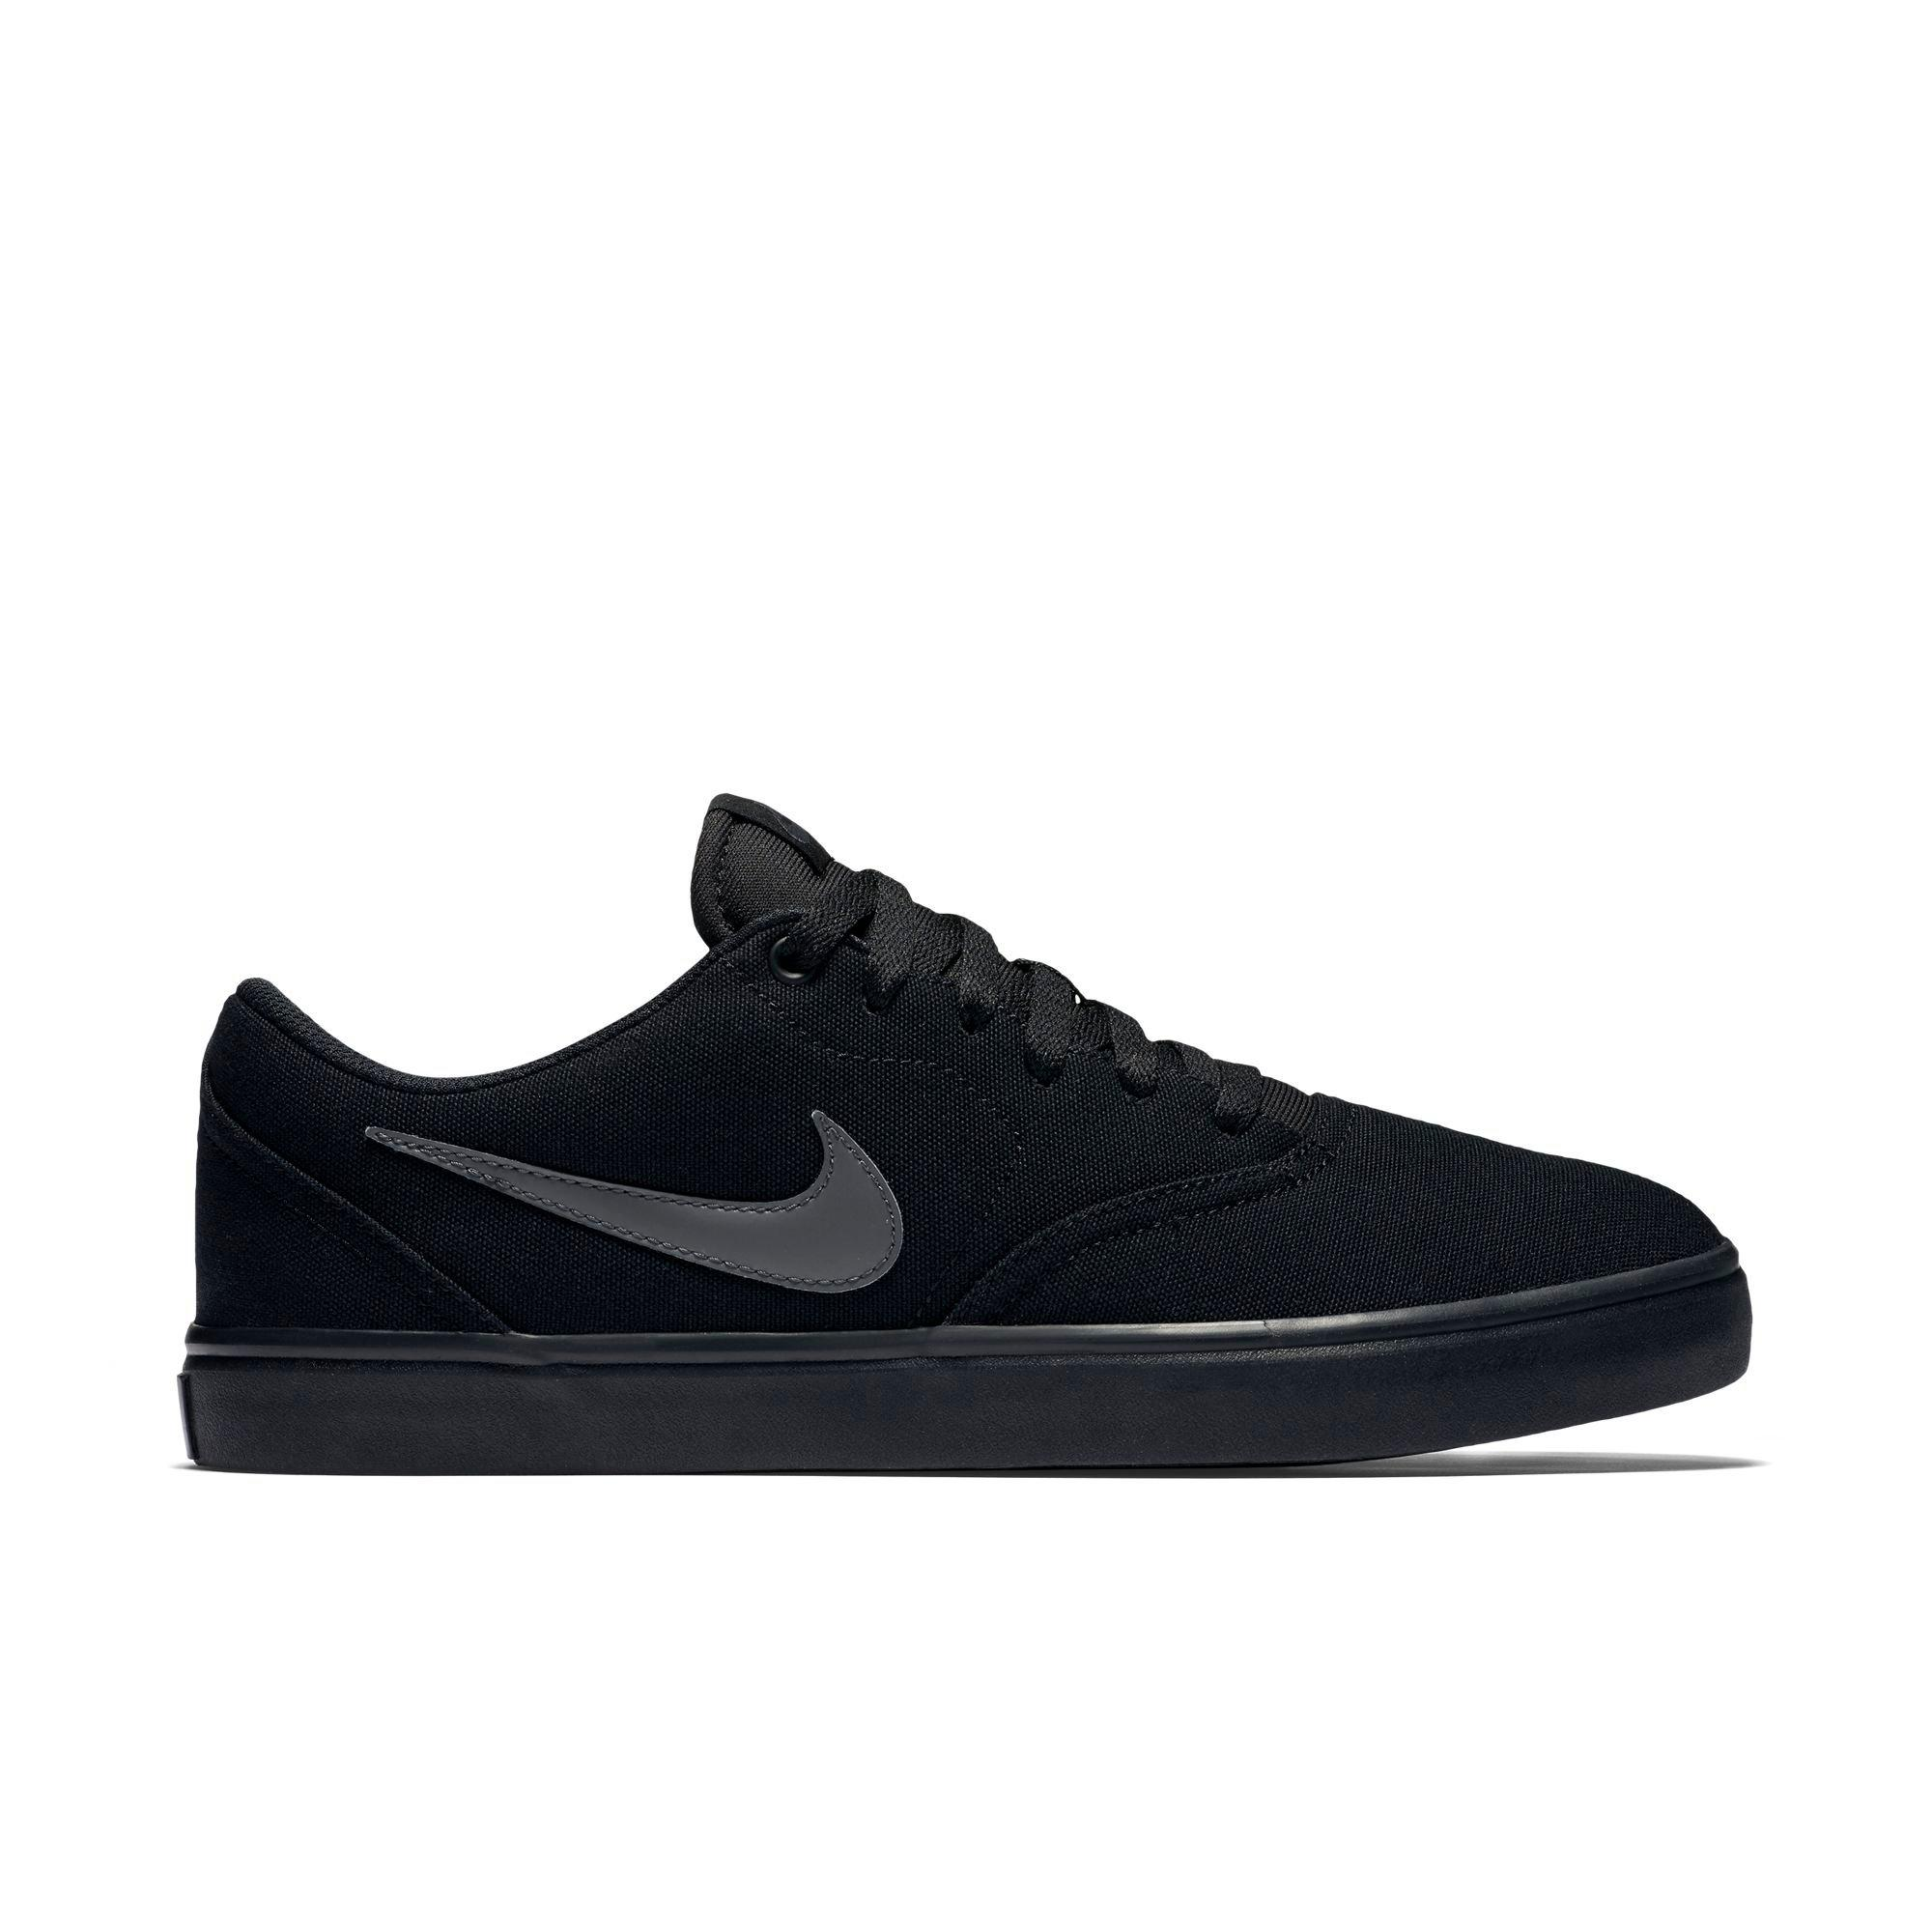 ... Men\u0027s Skate Shoe. Sale Price$65.00. 4.3 out of 5 stars. Read reviews.